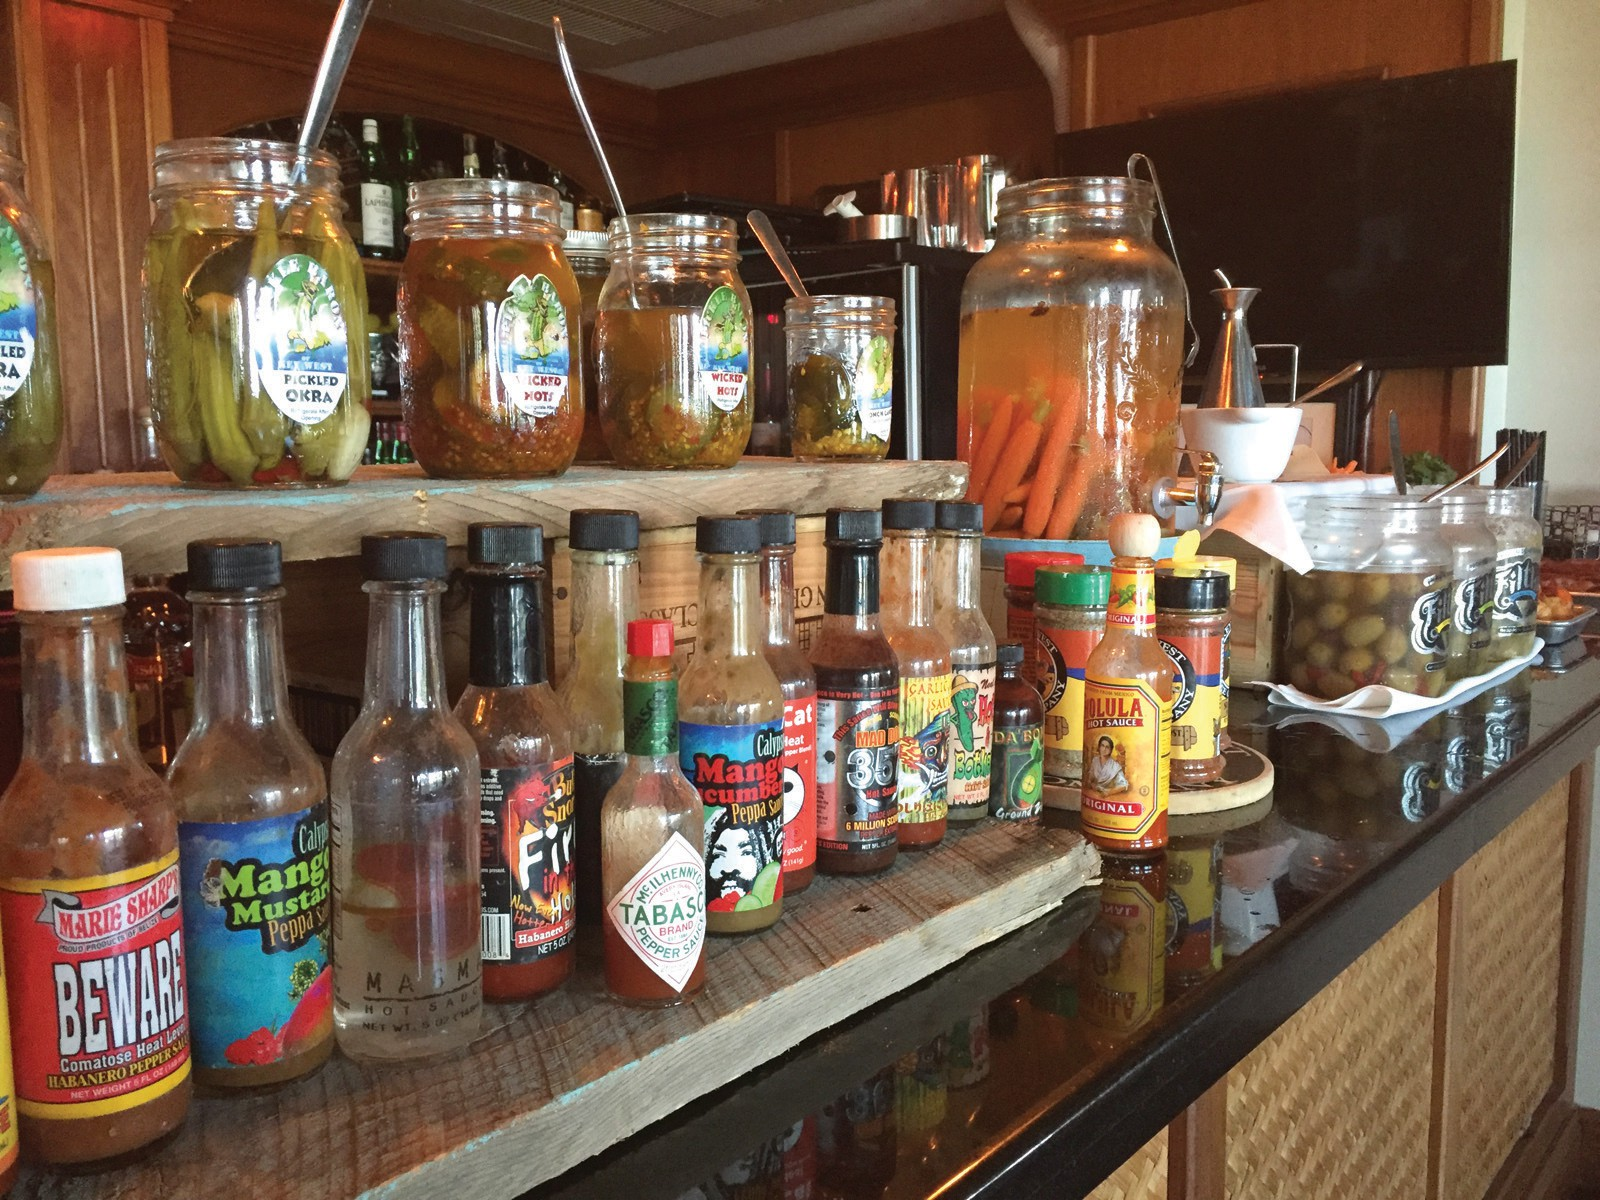 The Bloody Mary bar at Hot Tin Roof.